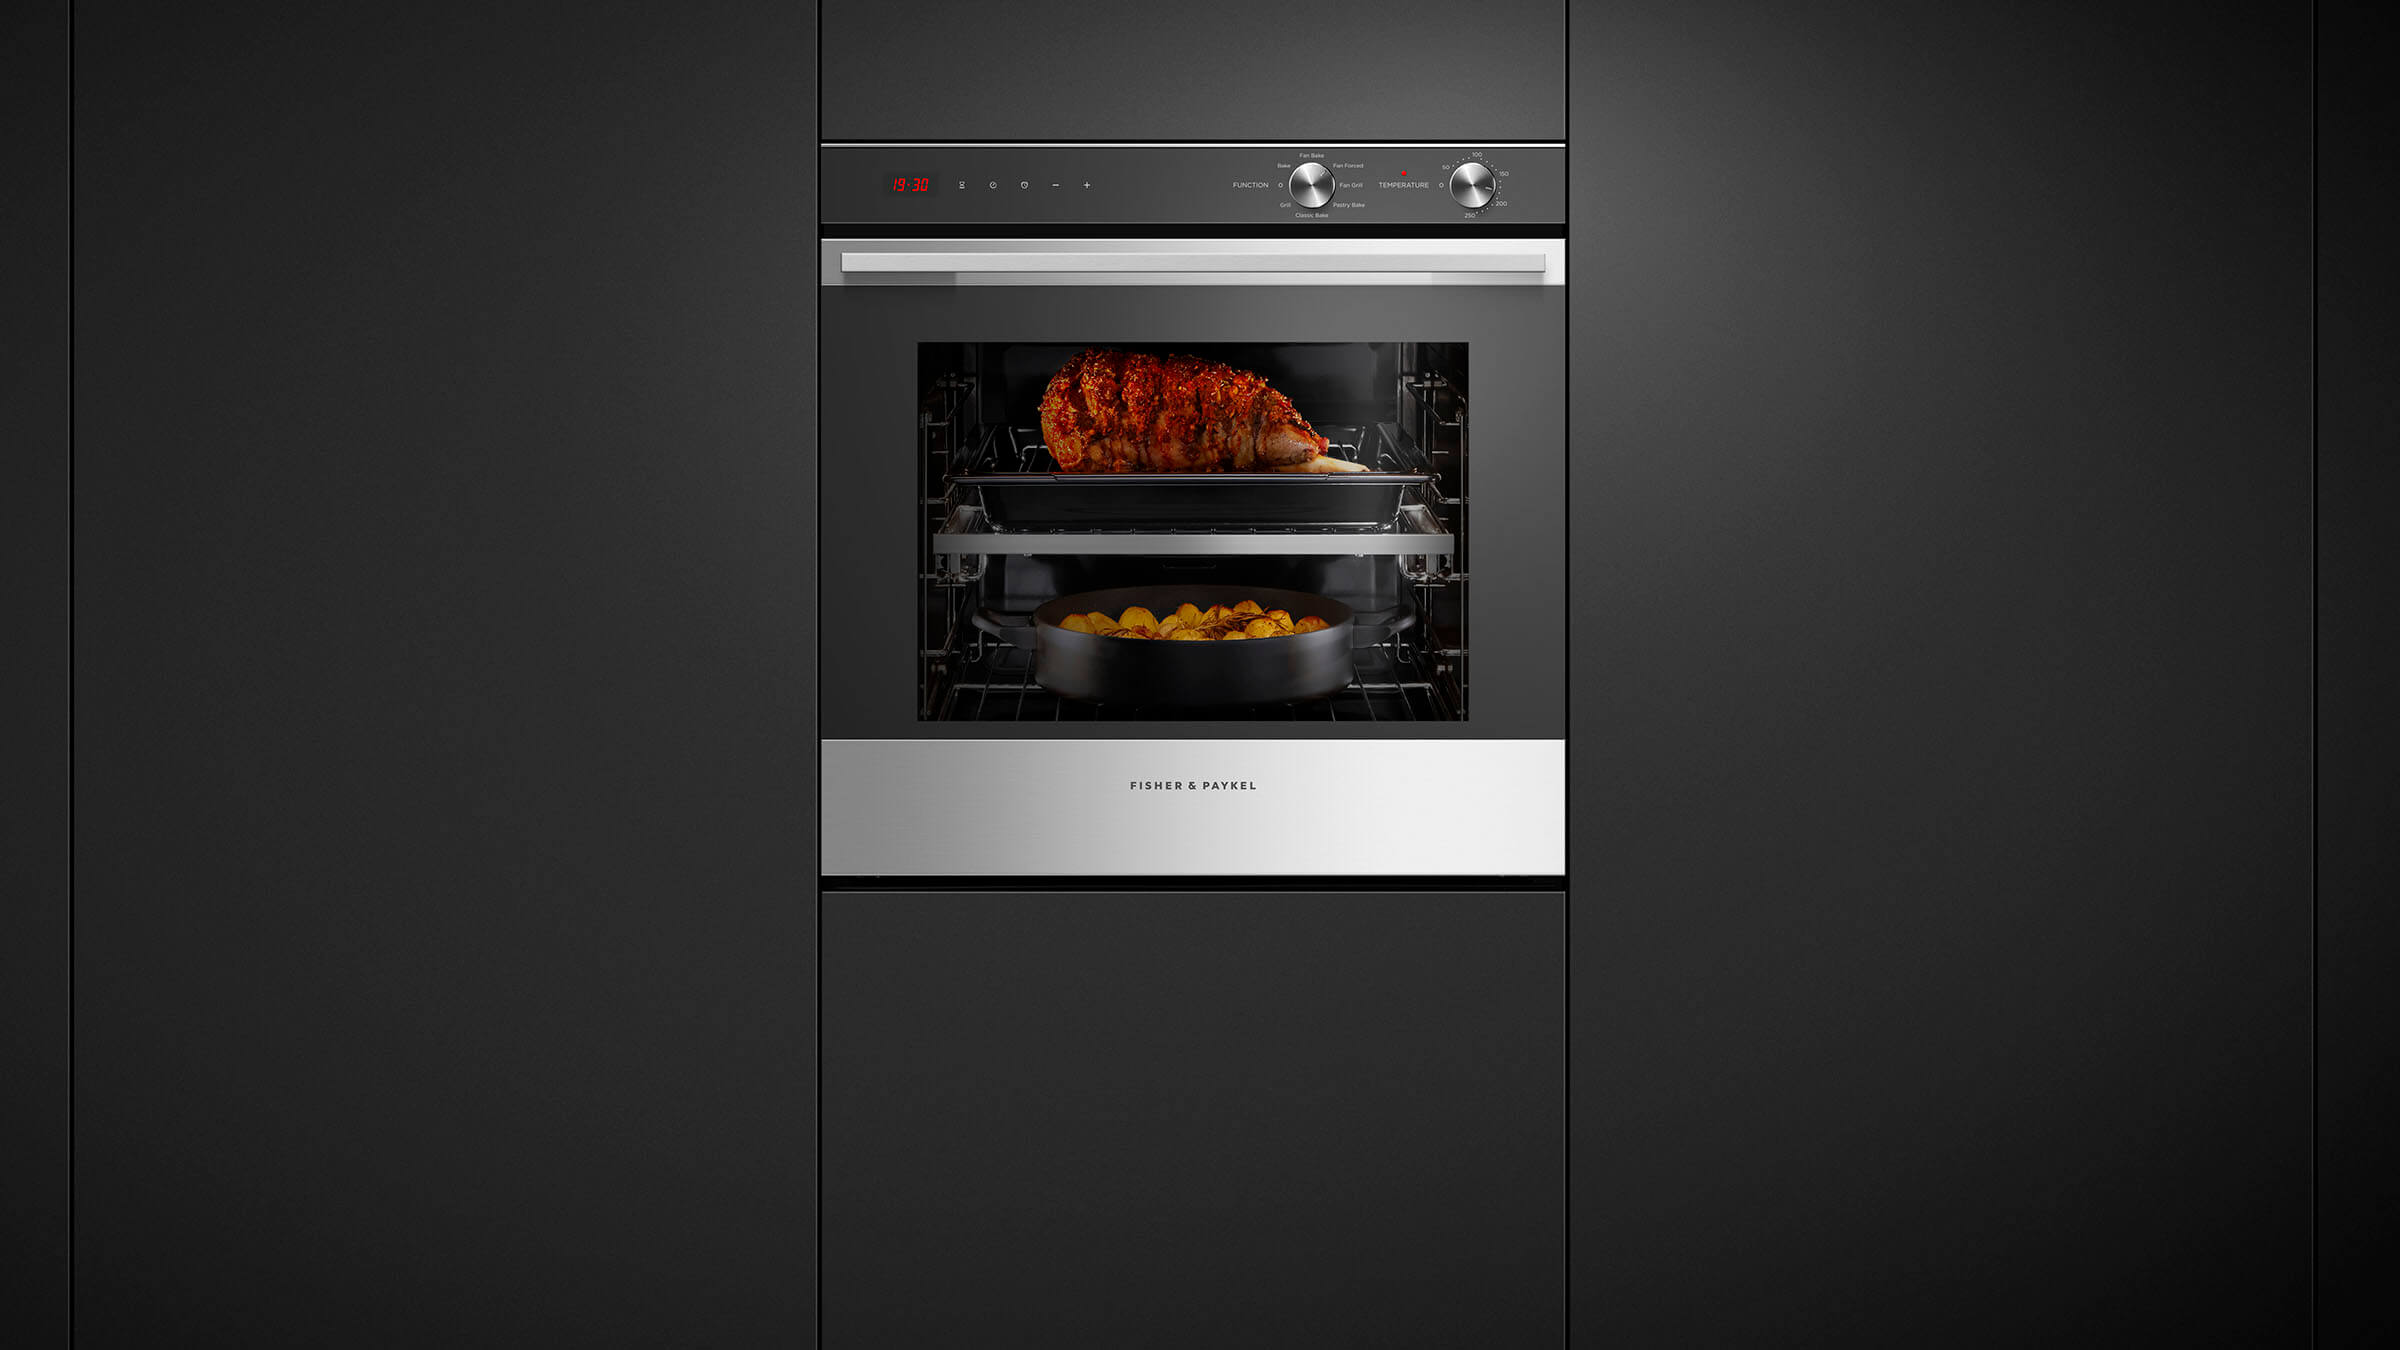 ob60sl7dex1 fisher and paykel function single built in oven rh fisherpaykel com fisher and paykel saffron oven user manual fisher and paykel multifunction oven user guide